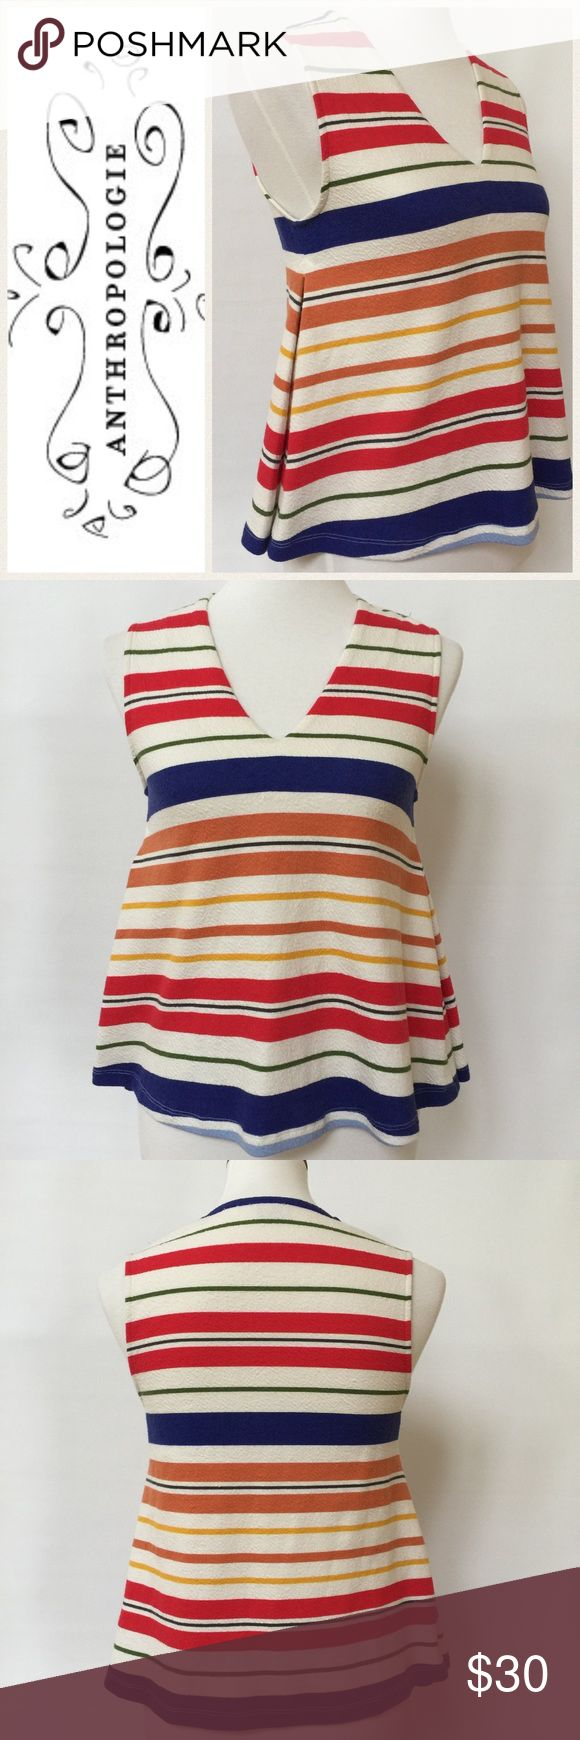 """Postmark for Anthropologie Striped Tank EUC. Swing style, crop tank. Side pleat present to both sides. Combination of multi colored stripes on a off white background. Fabric has a """"crinkle"""" texture, see close up. Measurements are as follows and approximate, taken while garment was laying flat. Underarm to underarm: 17"""". Shoulder to hem 21"""". Logo go is internet stock photo. All other photos are of actual top. Anthropologie Tops"""